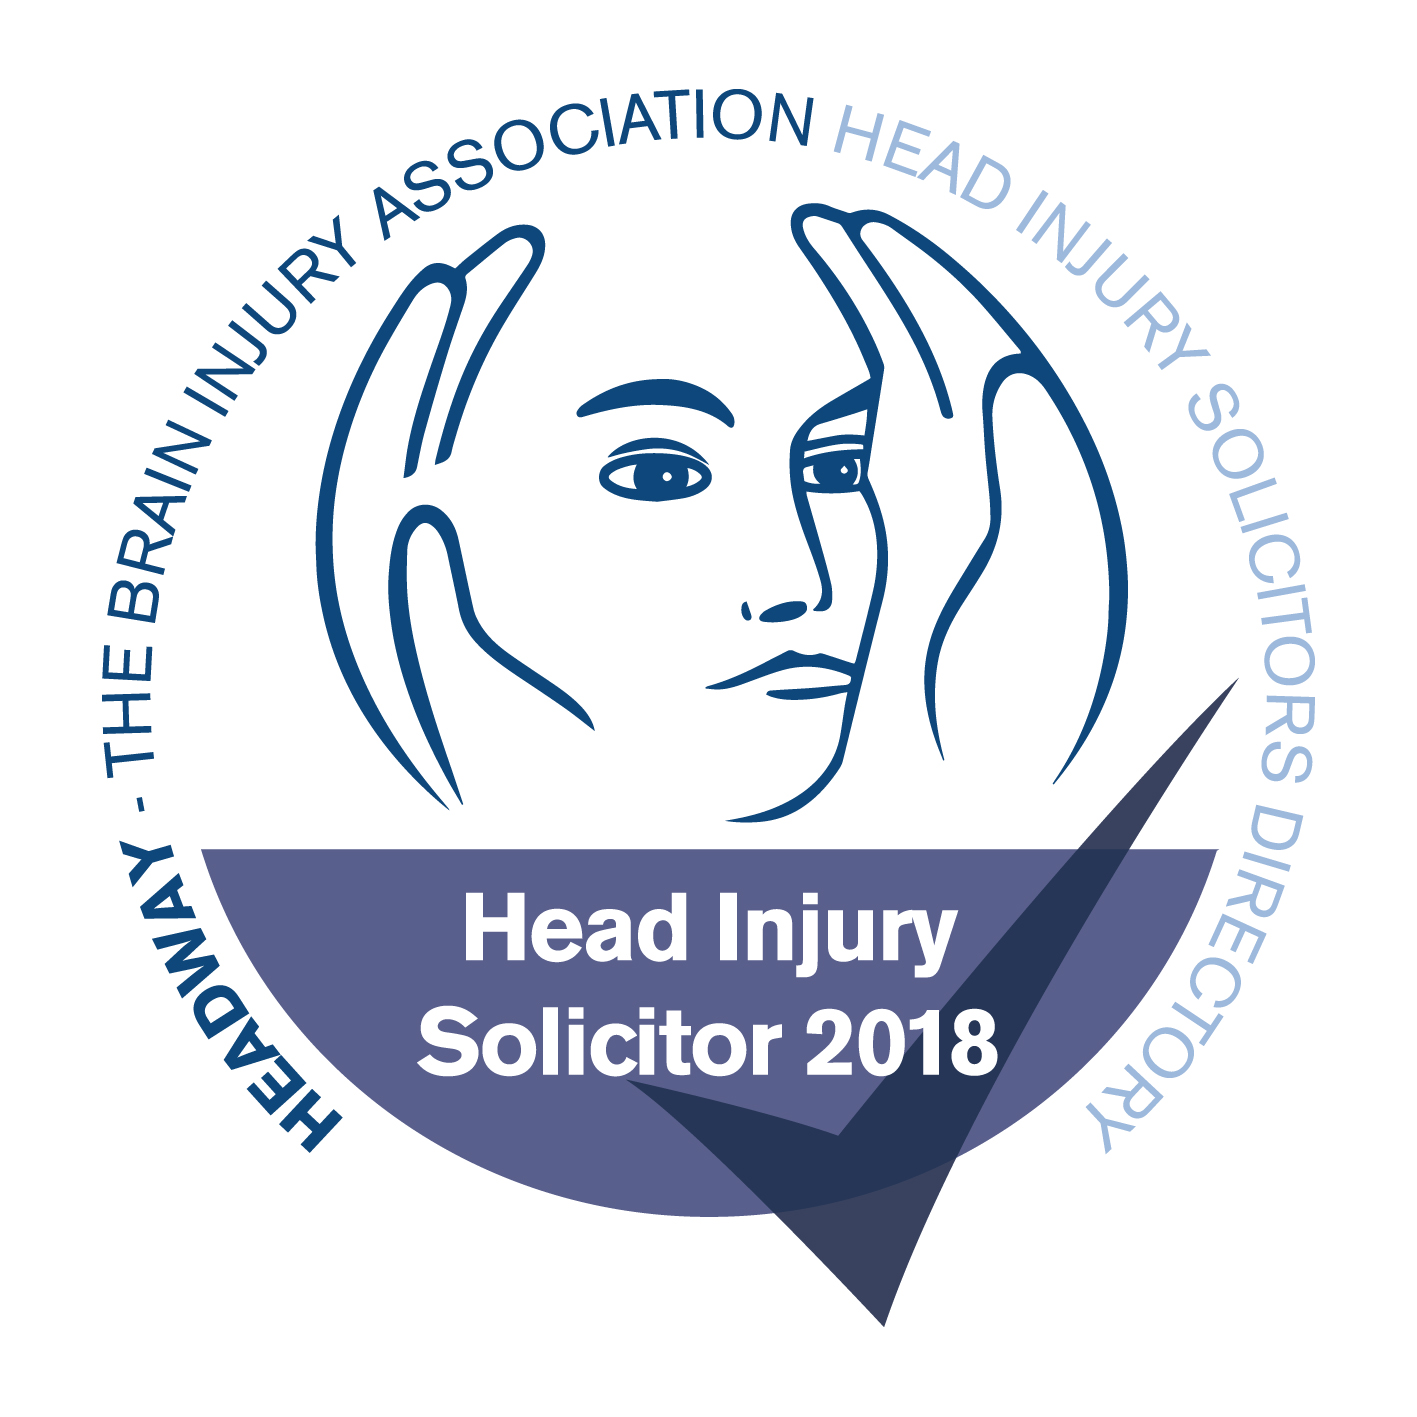 Headway - Head Injury Solicitor Accreditation